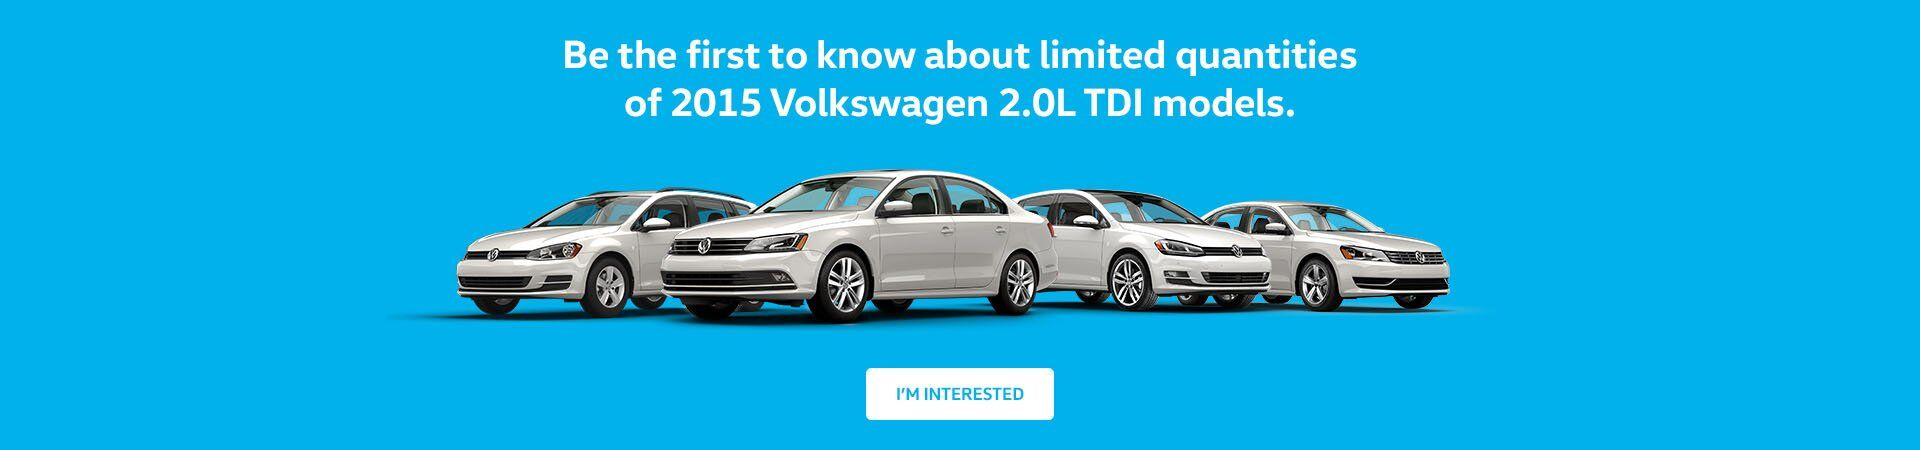 Volkswagen Dealership Mentor OH Used Cars Classic Volkswagen - Volkswagen dealers in ohio